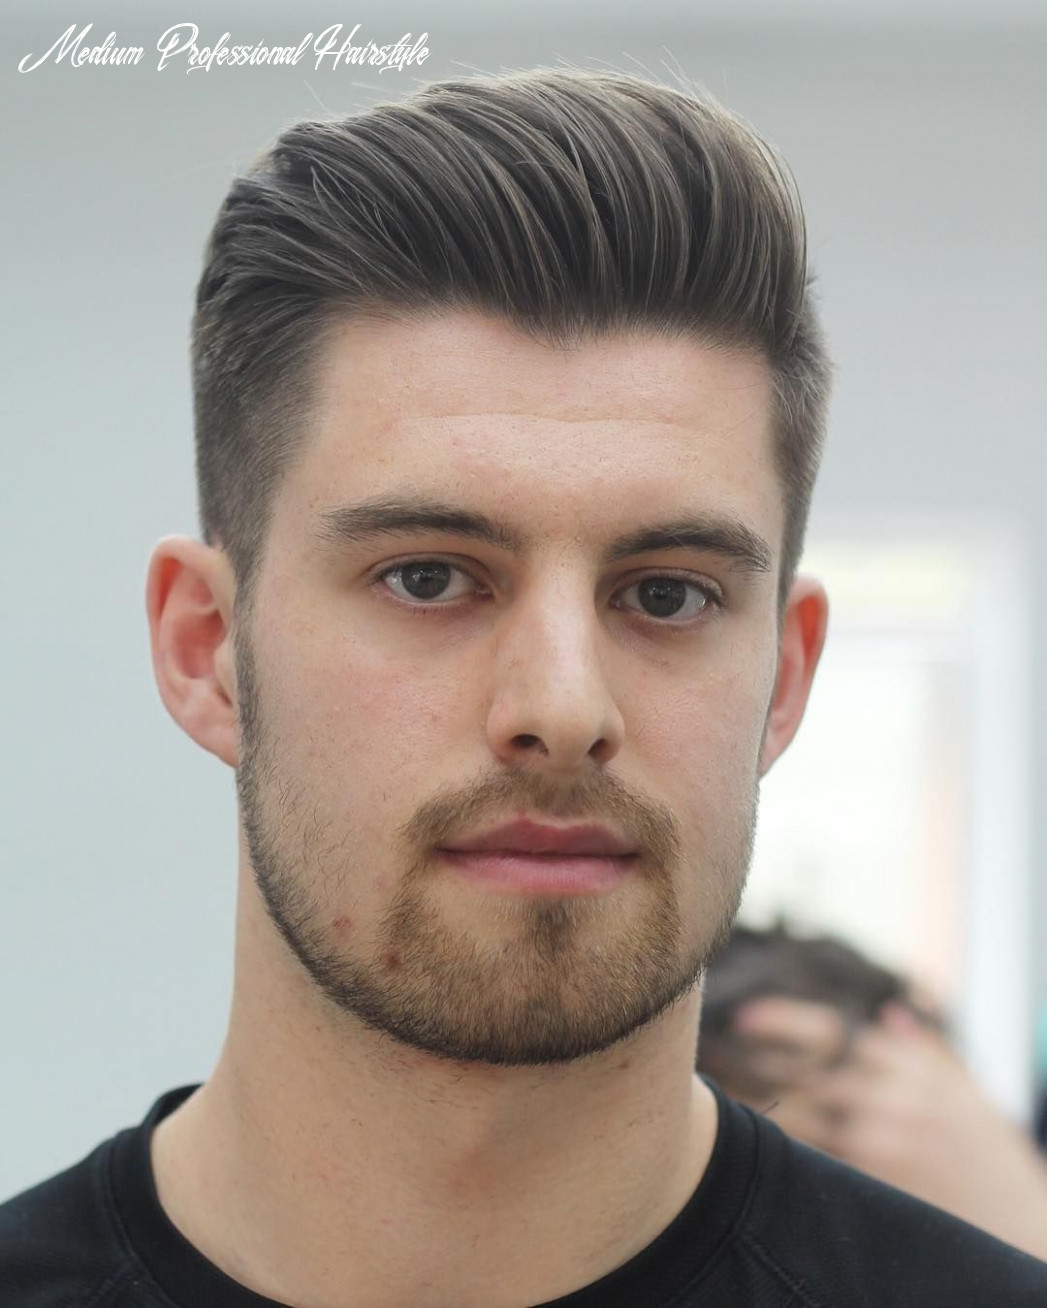 Cool 9 classic professional hairstyles for men do your best